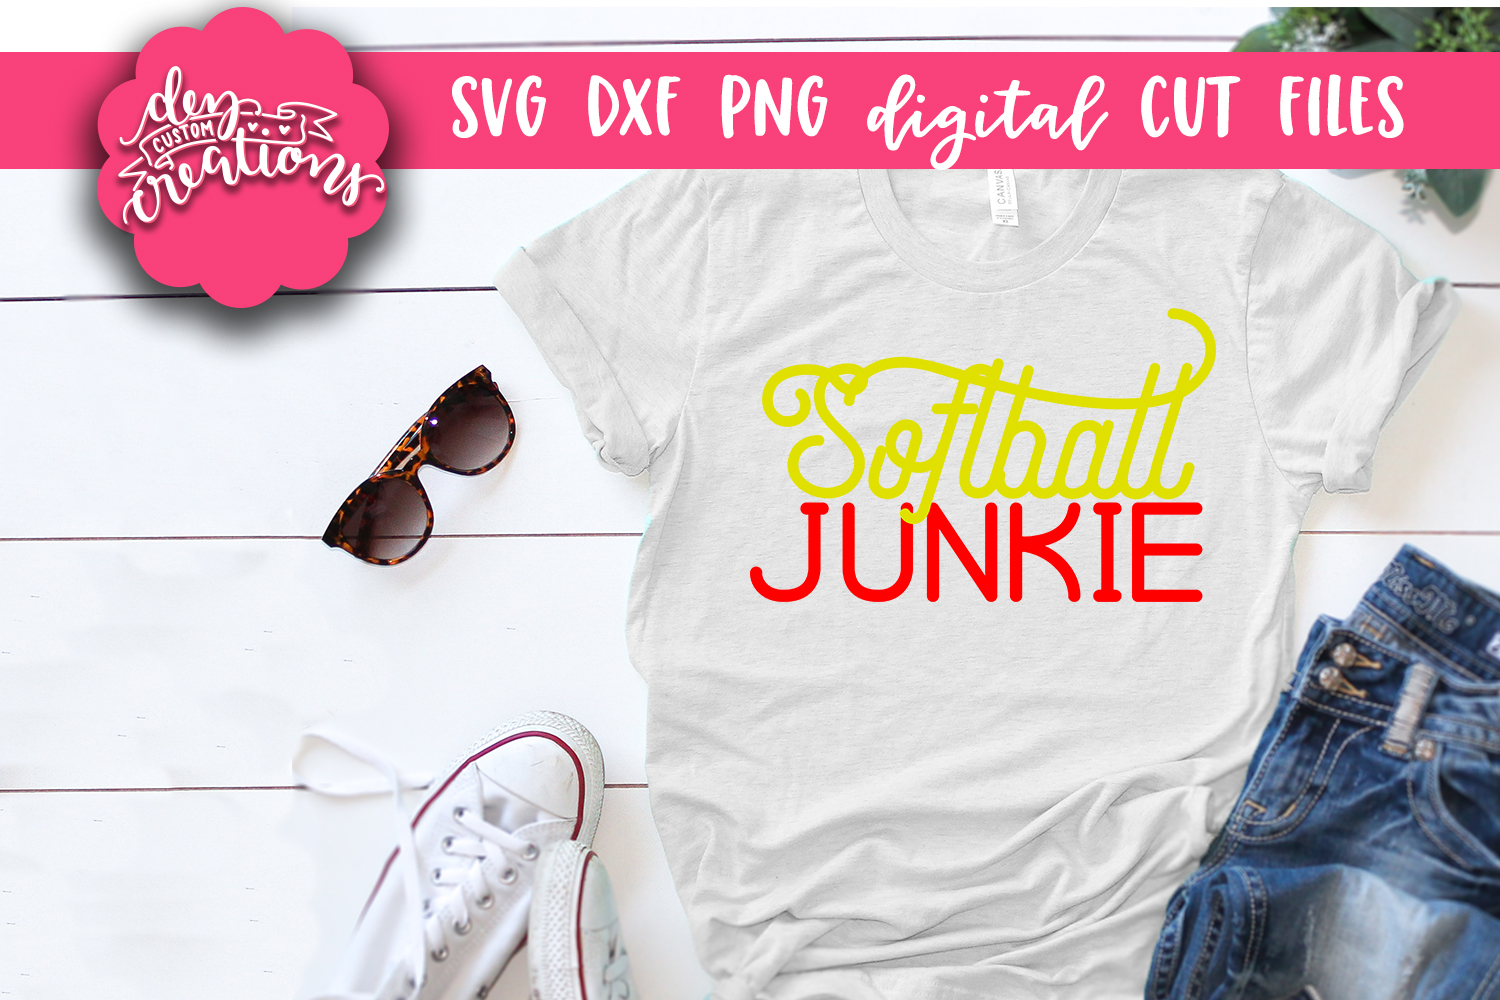 Softball Junkie - SVG DXF PNG Cut files & Clipart example image 2